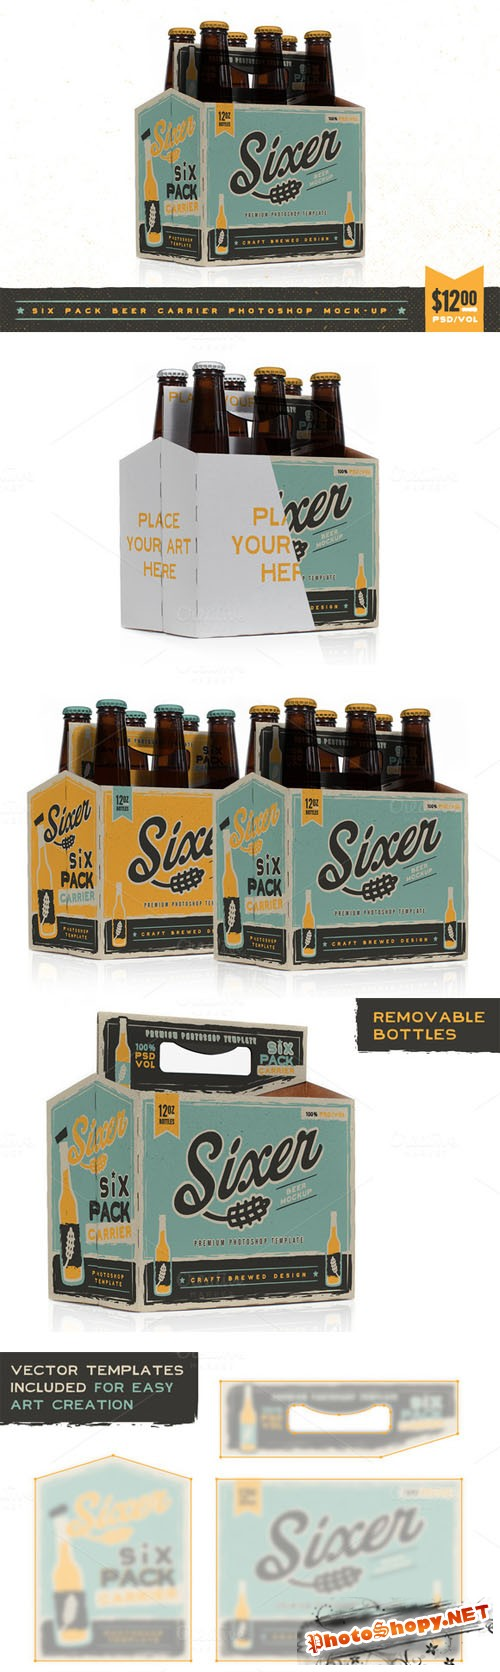 CreativeMarket - Six pack beer bottle carrier Mock-Up